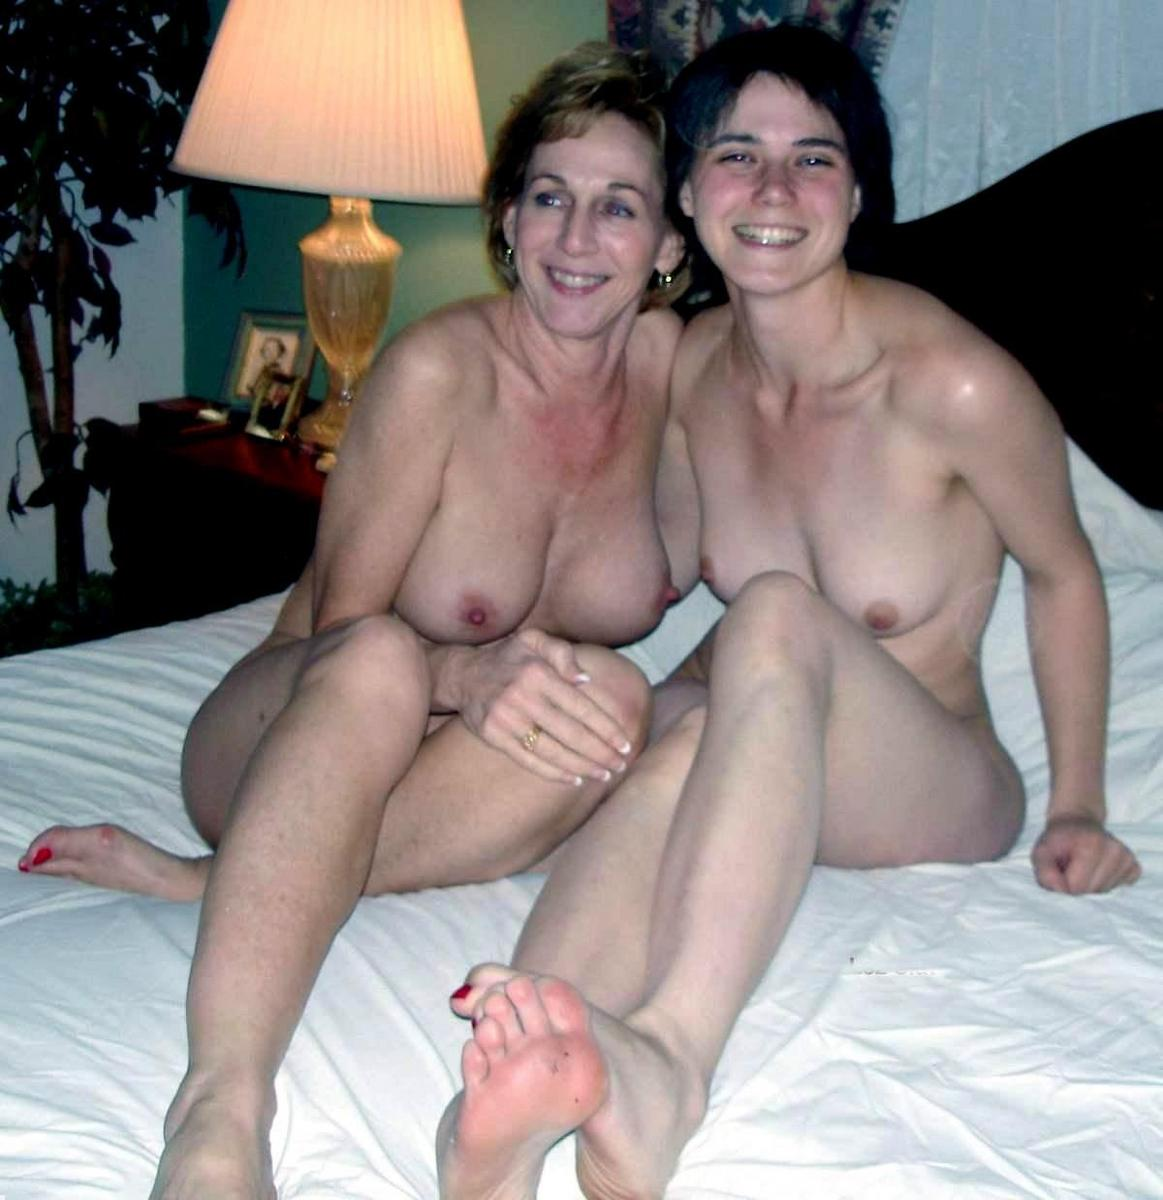 Real mother daughter naked having sex, big fat boobs nude women videos